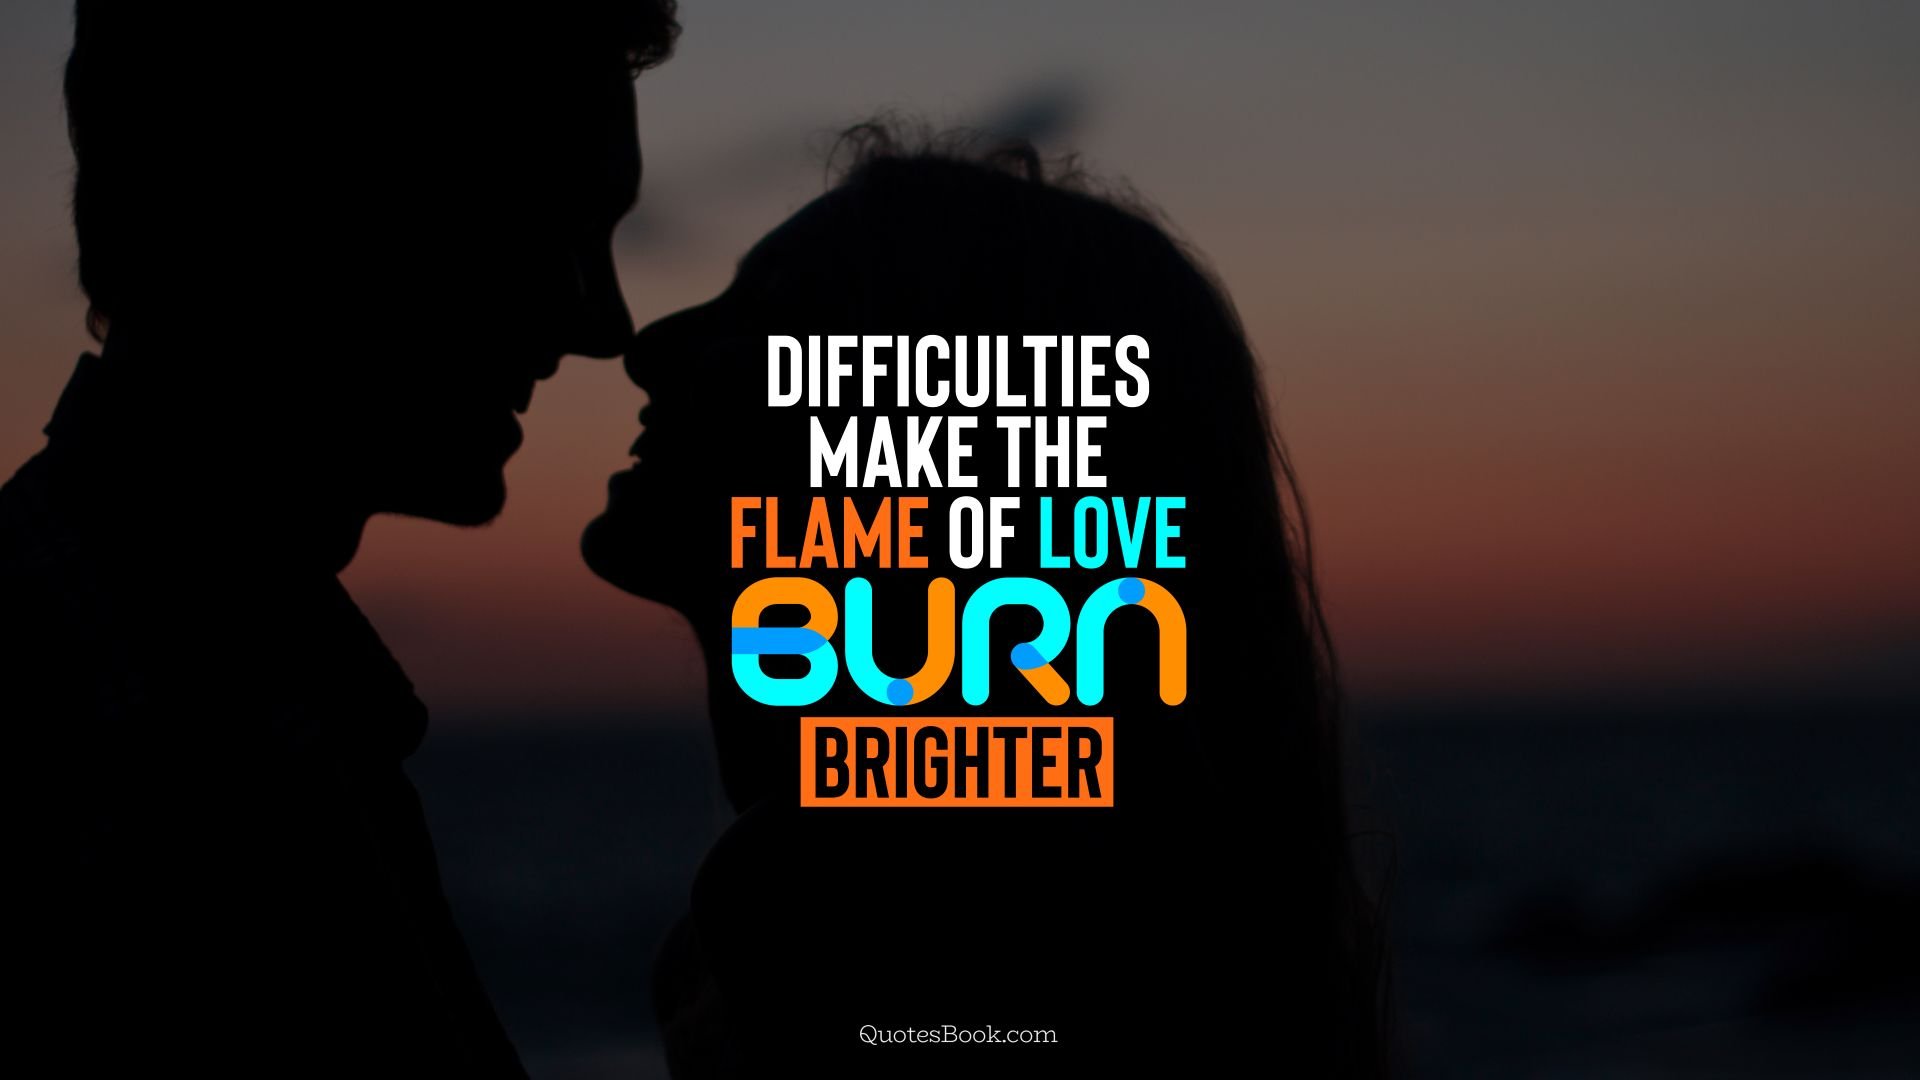 Difficulties make the flame of love burn brighter. - Quote by QuotesBook